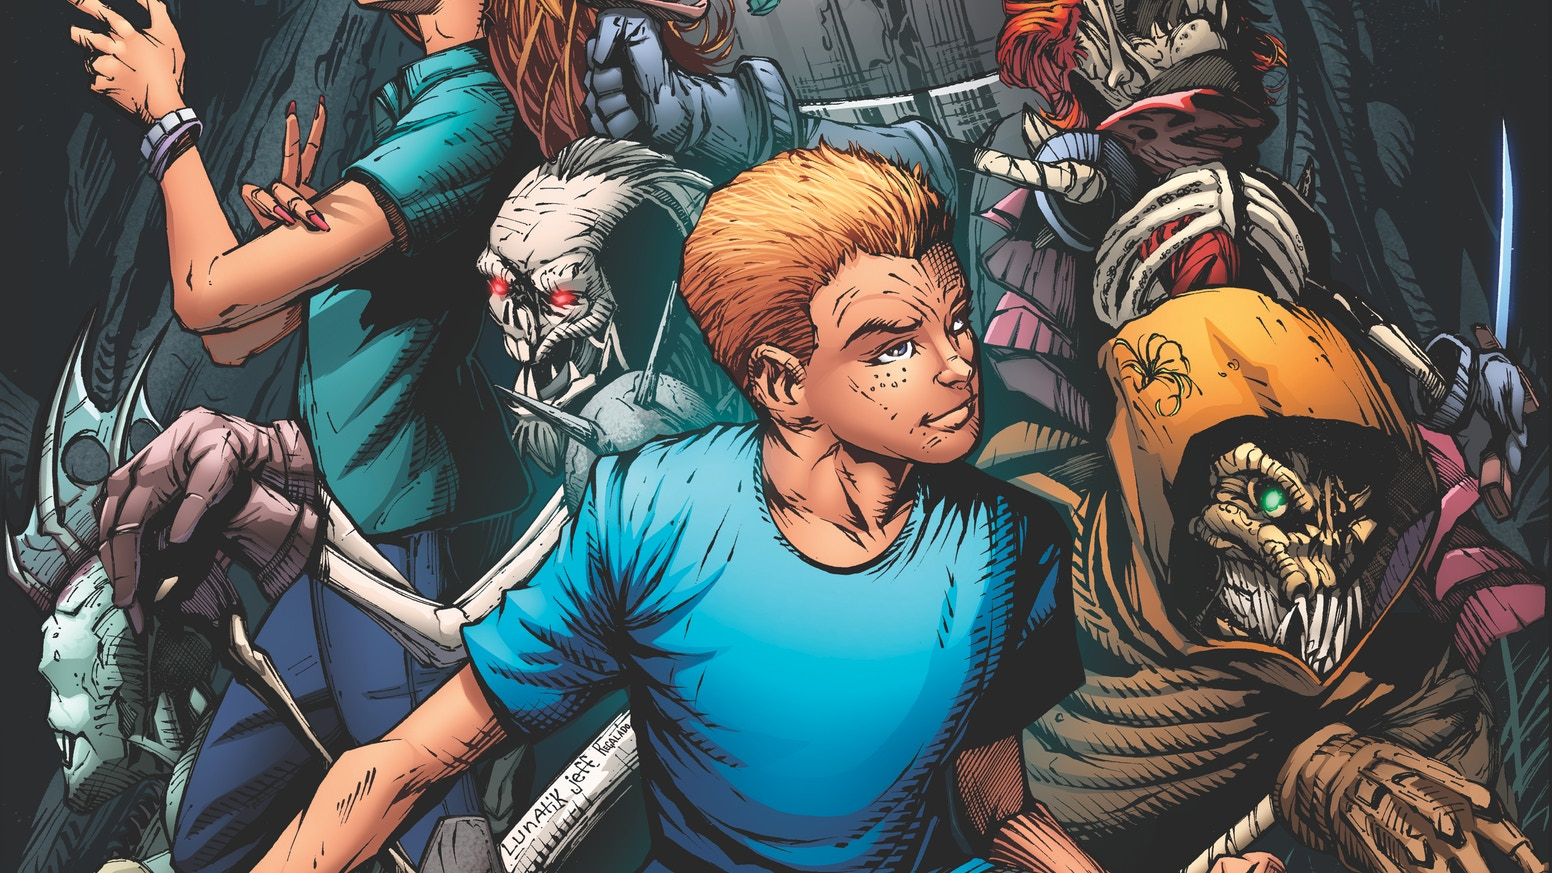 Issue #1 in a 6 issue comic book miniseries that finds Joshua, a young boy, plunged in to a world he thought was only a card game.